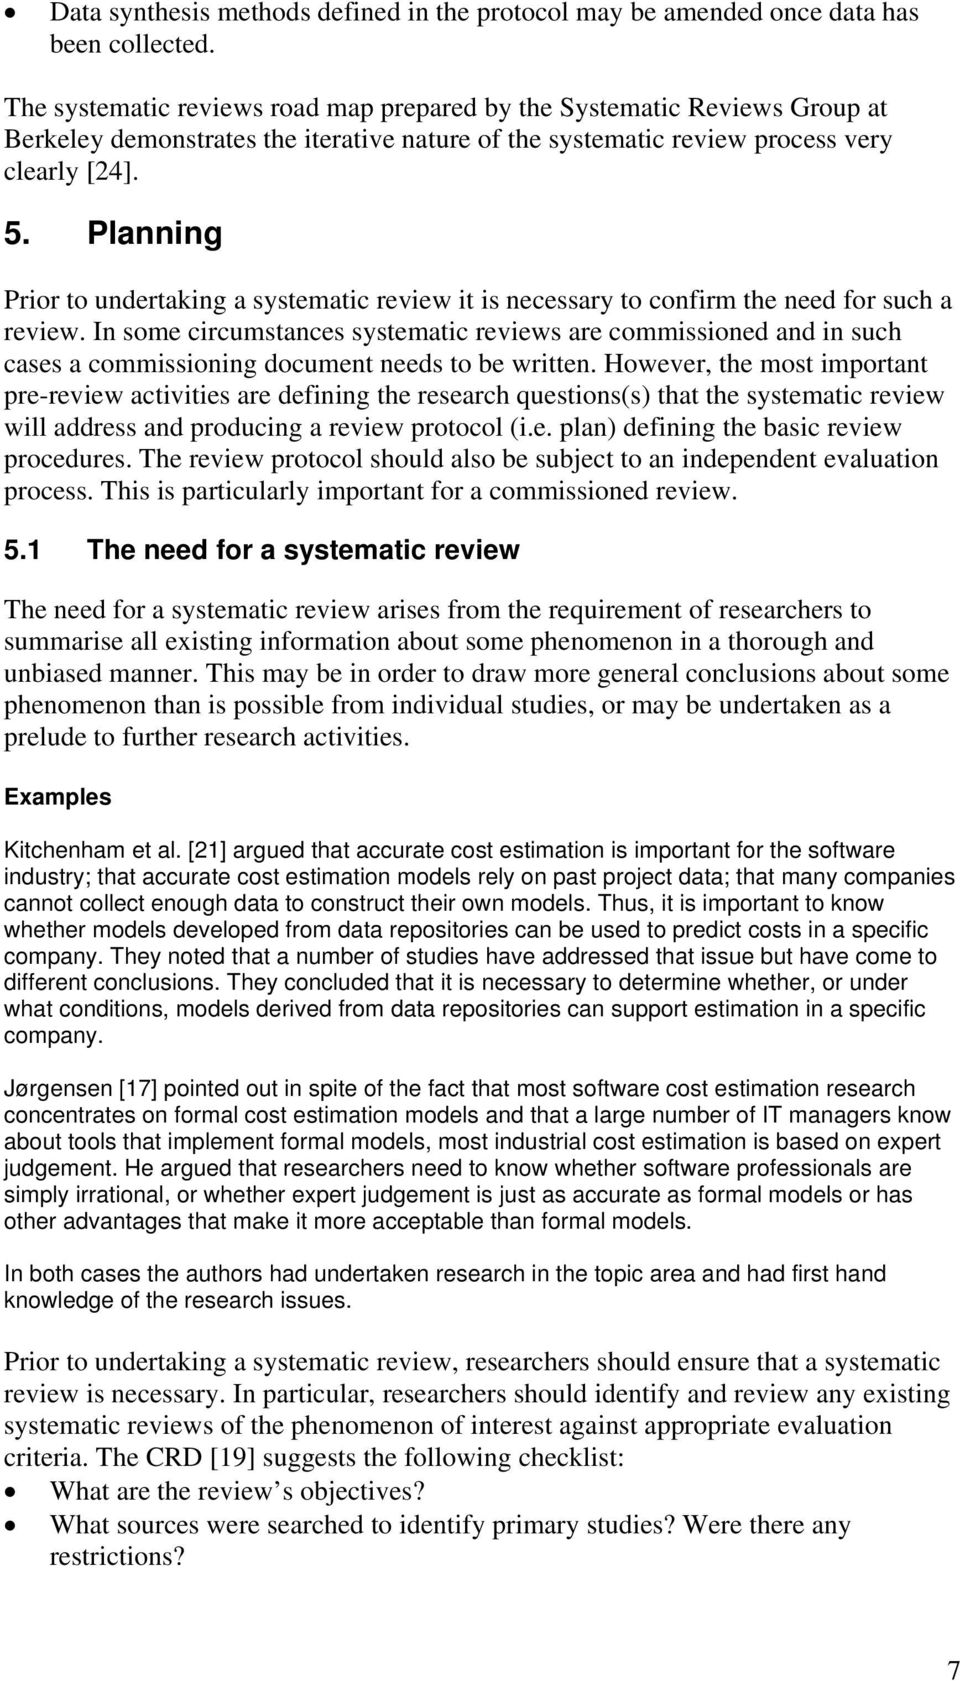 Planning Prior to undertaking a systematic review it is necessary to confirm the need for such a review.